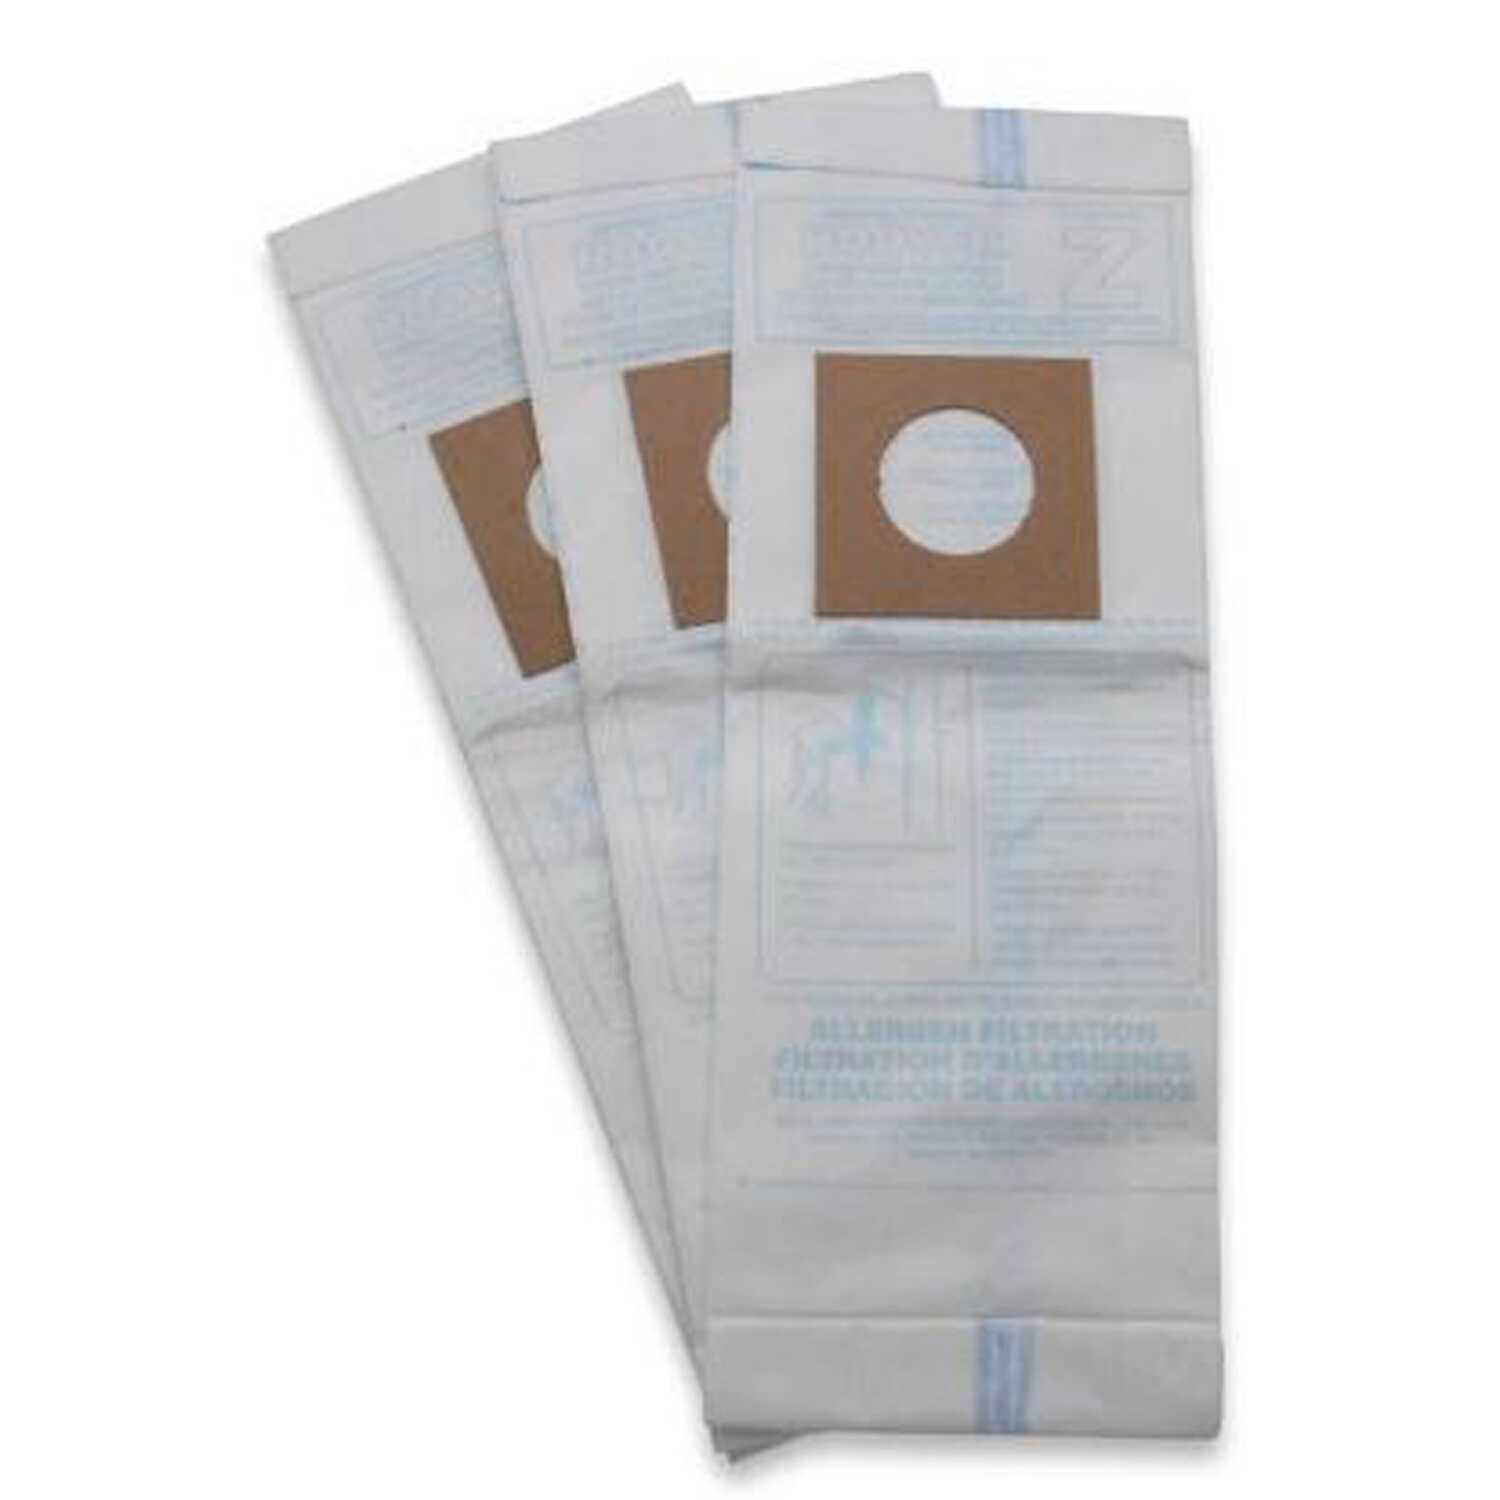 Hoover  Vacuum Bag  For Fit all Hoover upright cleaners that use type Z bags 3 pk